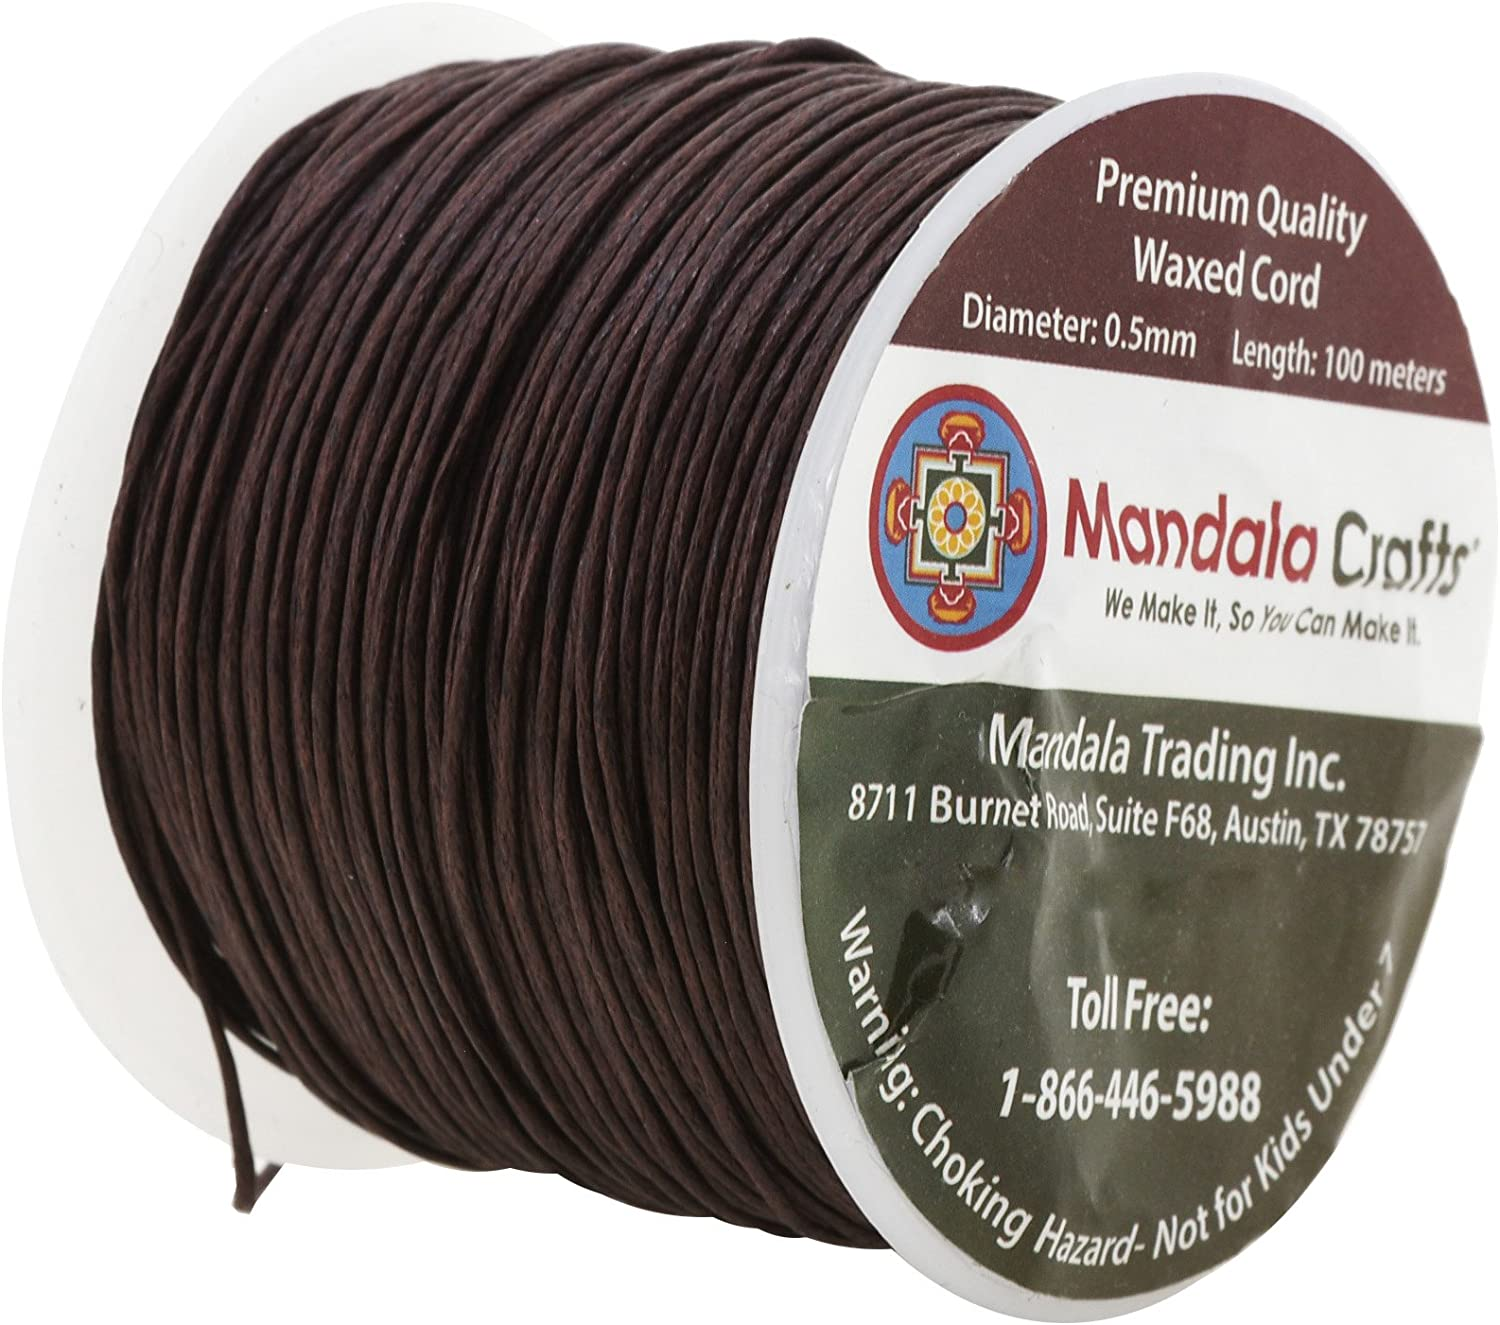 Mandala Crafts 0.5mm 109 Yards Jewelry Making Crafting Beading Macram/é Waxed Cotton Cord Thread Brown